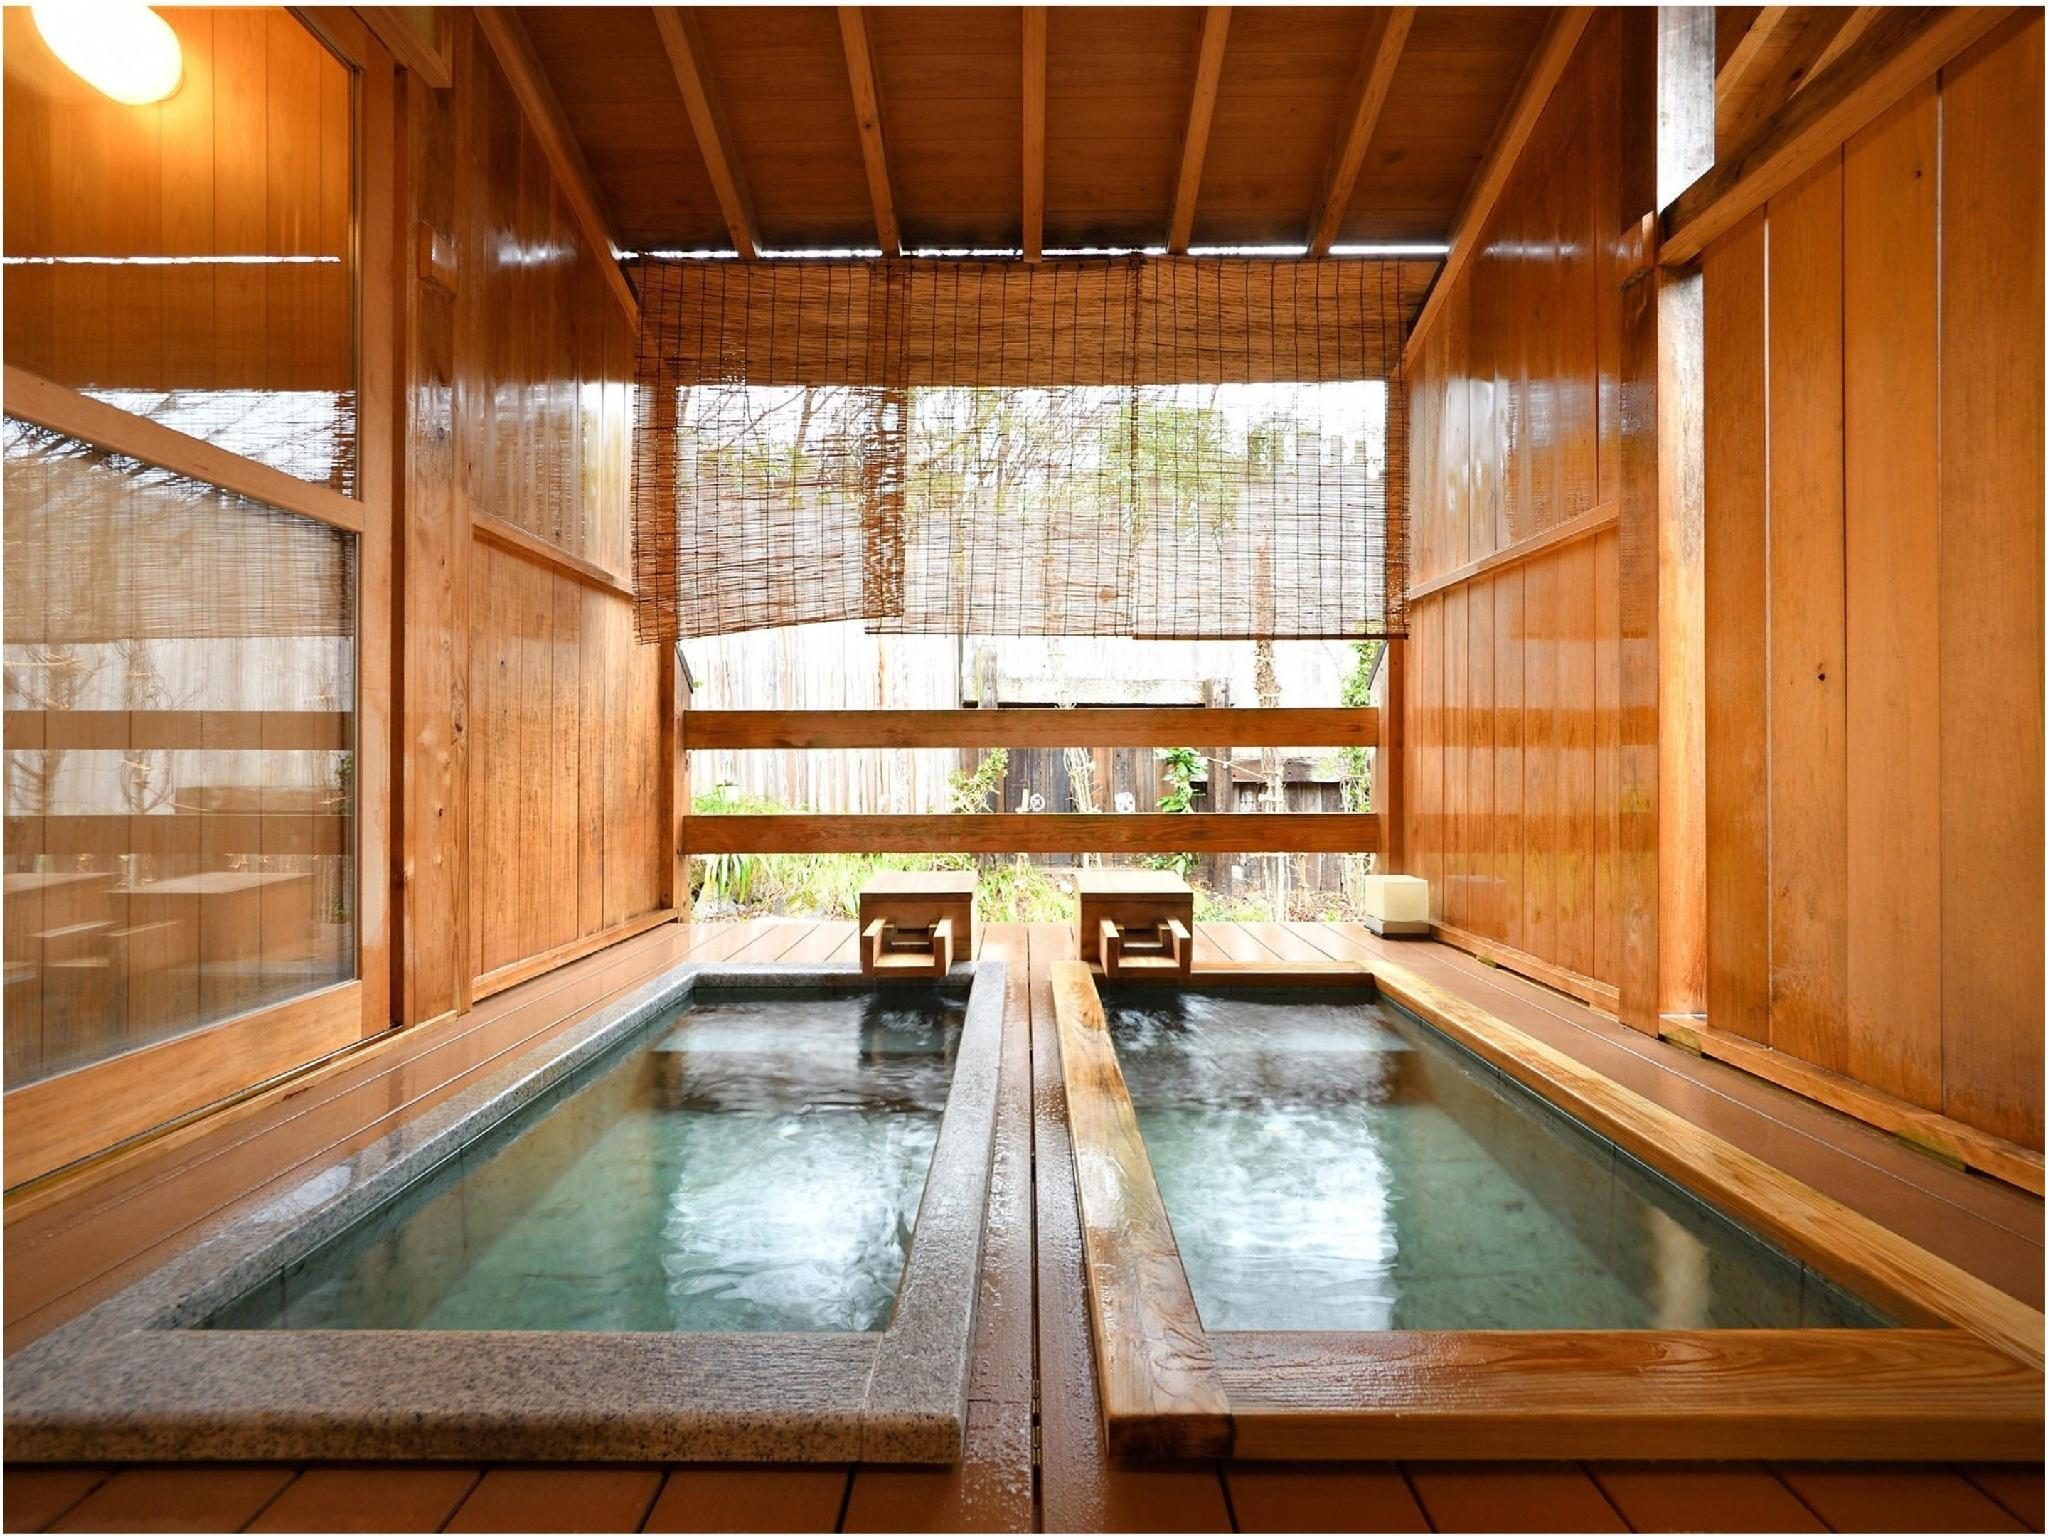 独立房(和洋式房+露天风吕) (Detached Japanese/Western-style Room with Open-air Bath)